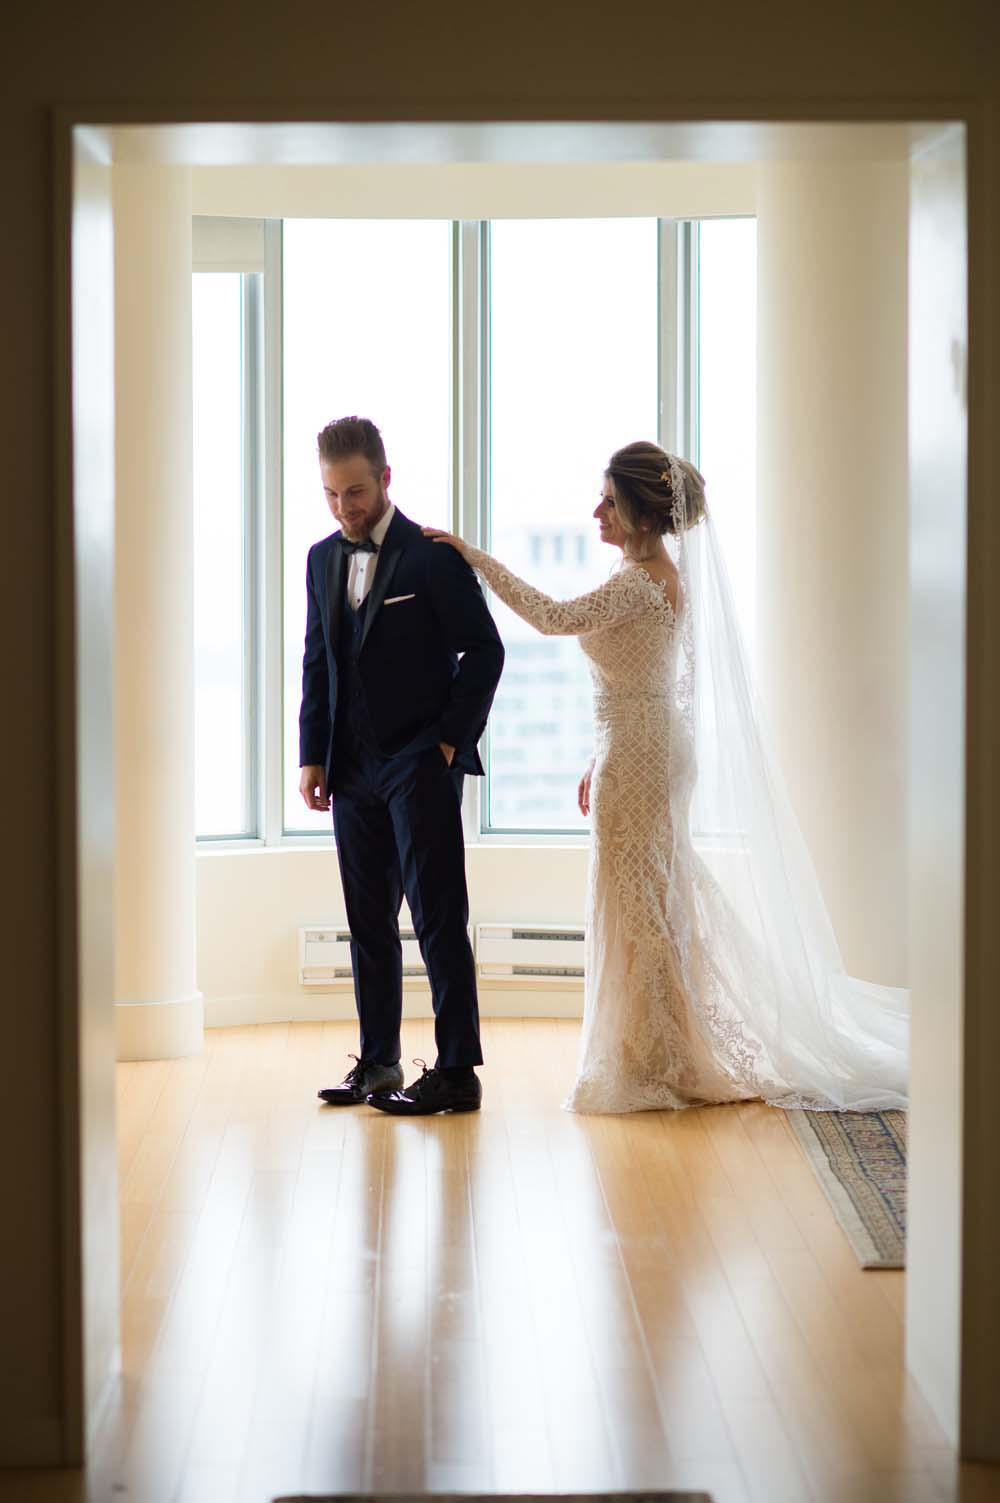 A Classic Vintage inspired Wedding at the One King West in Toronto - Groom turning to see Bride